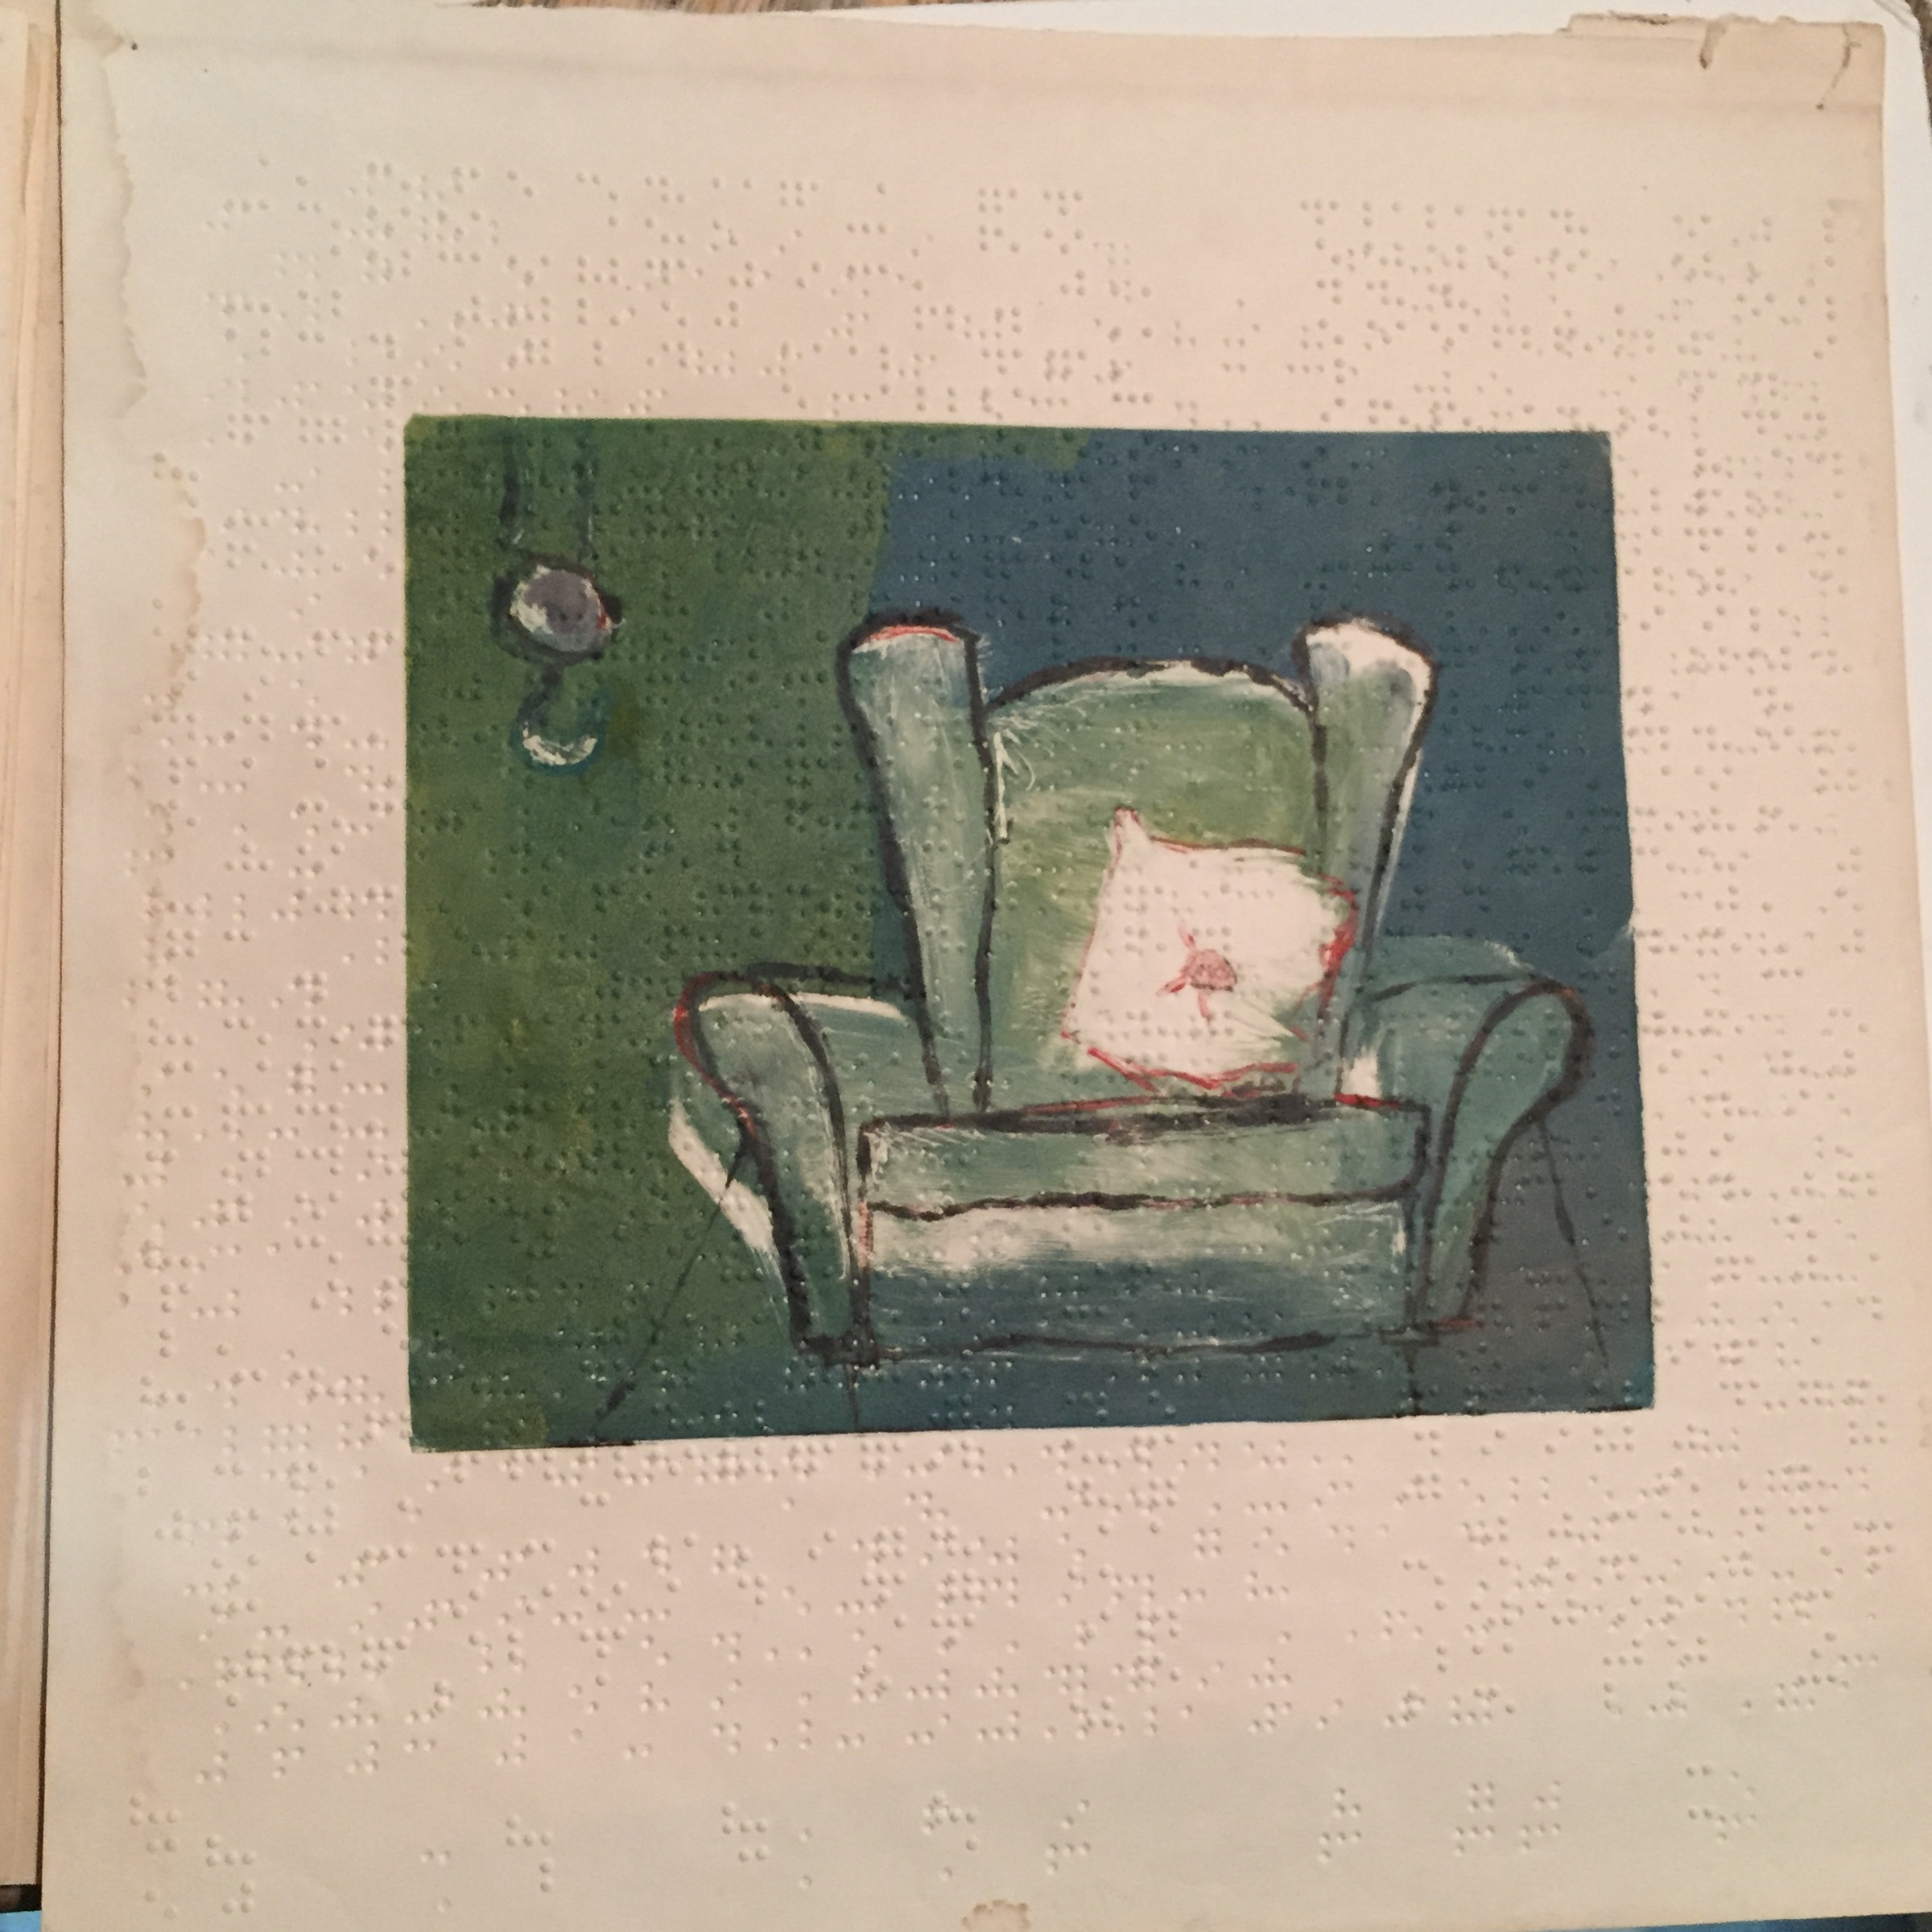 $100 - Everyday things outfitted proper just as I remember (chair). Monoprint on Braille paper. 12